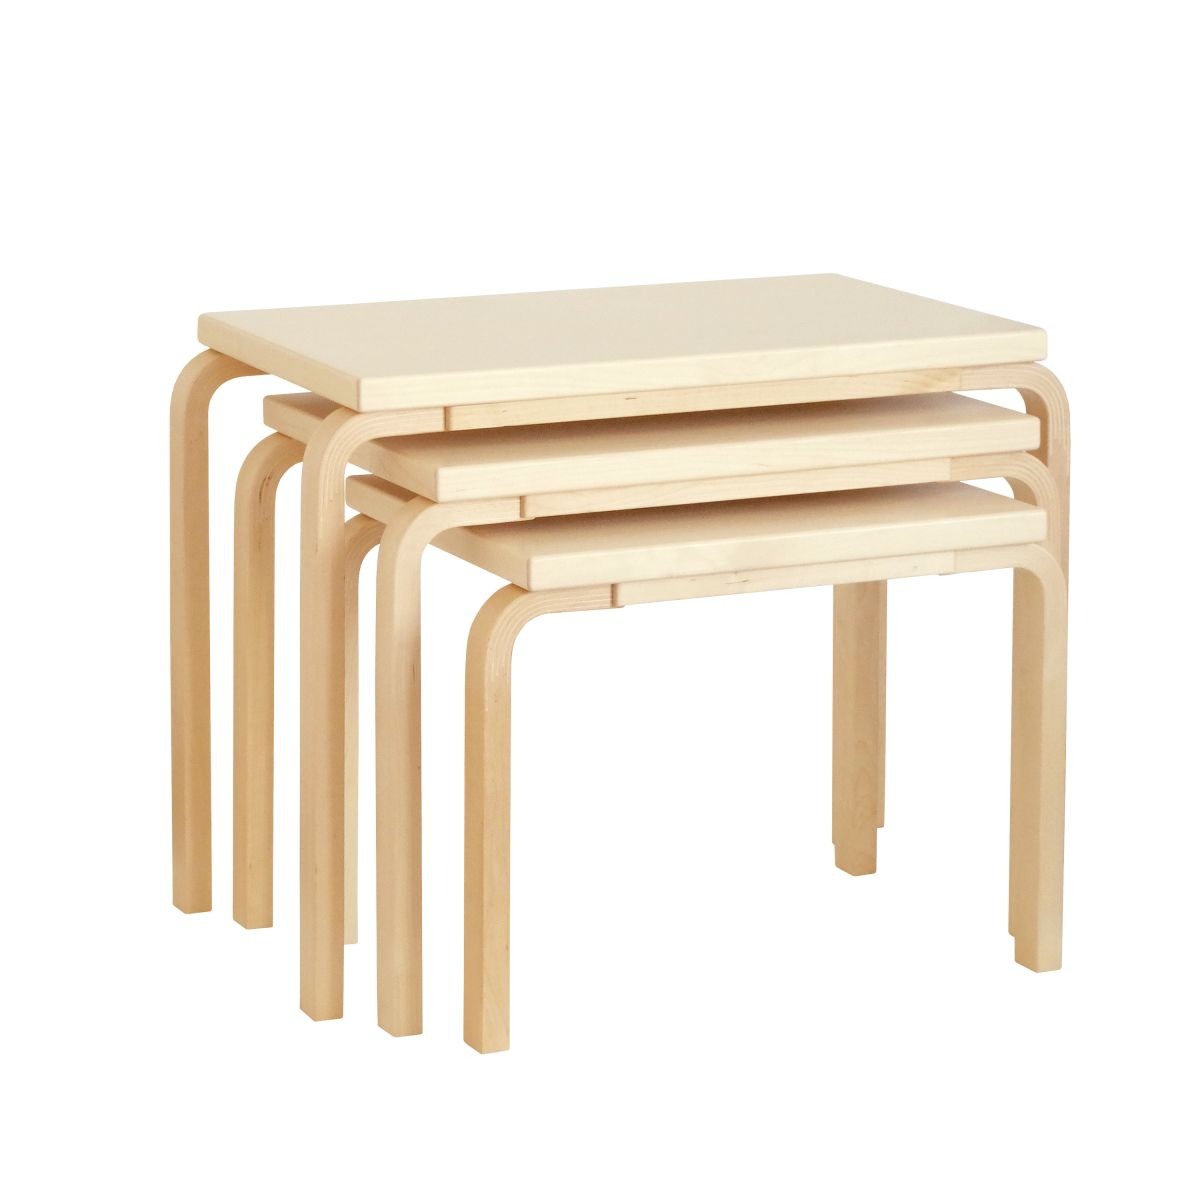 Nesting-table-88_stack-2995774